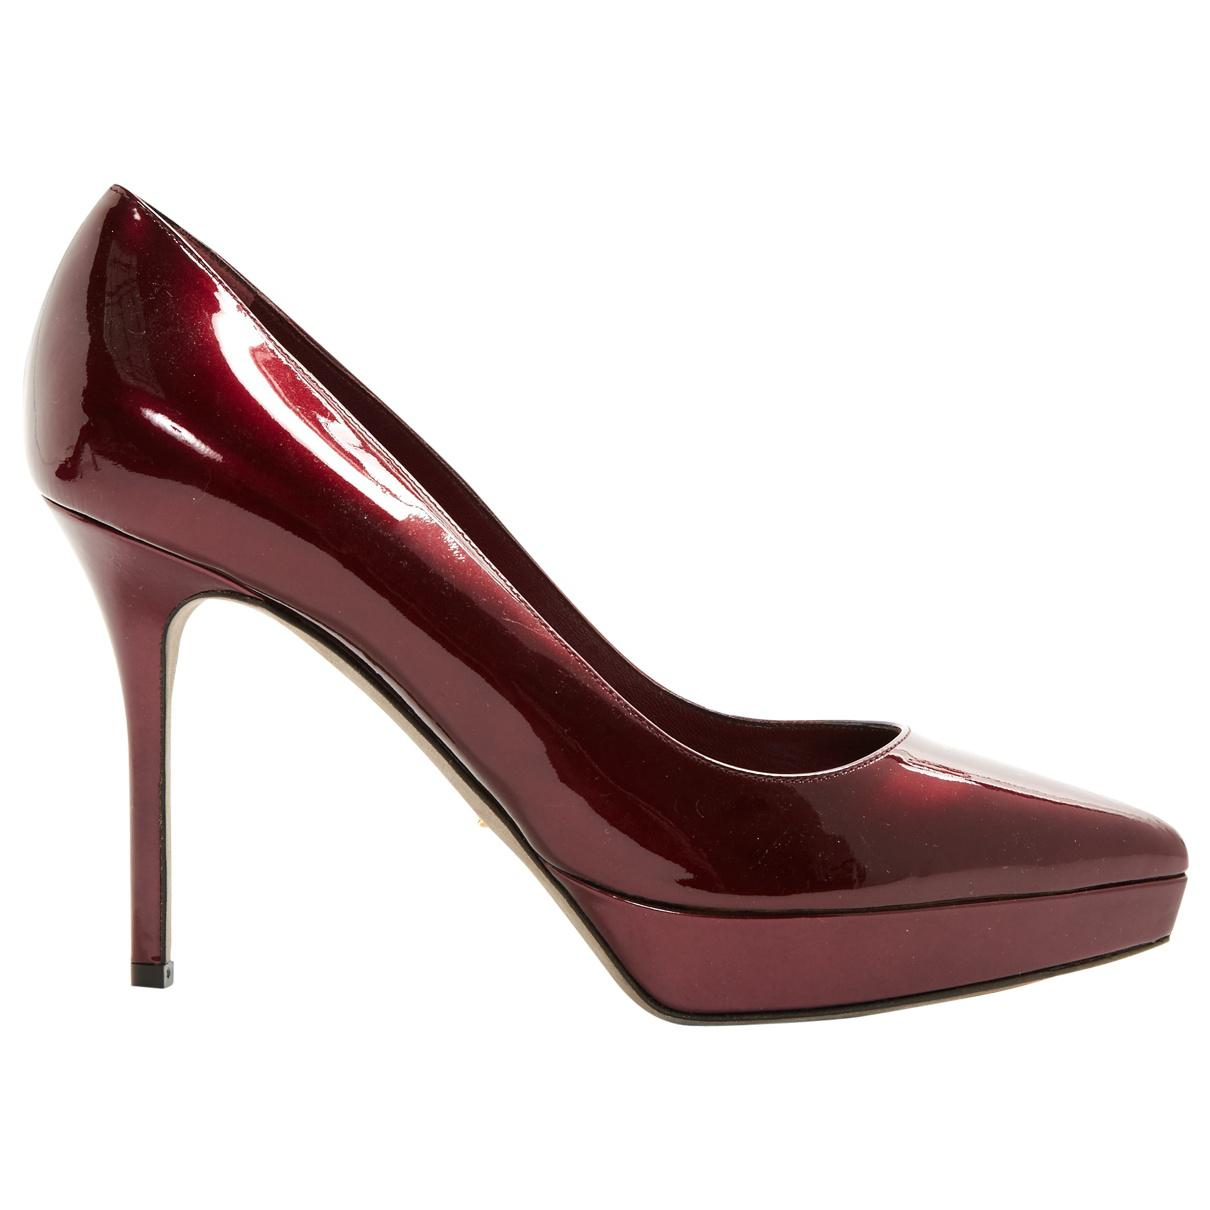 Pre-owned - Patent leather heels Sergio Rossi SE7aye